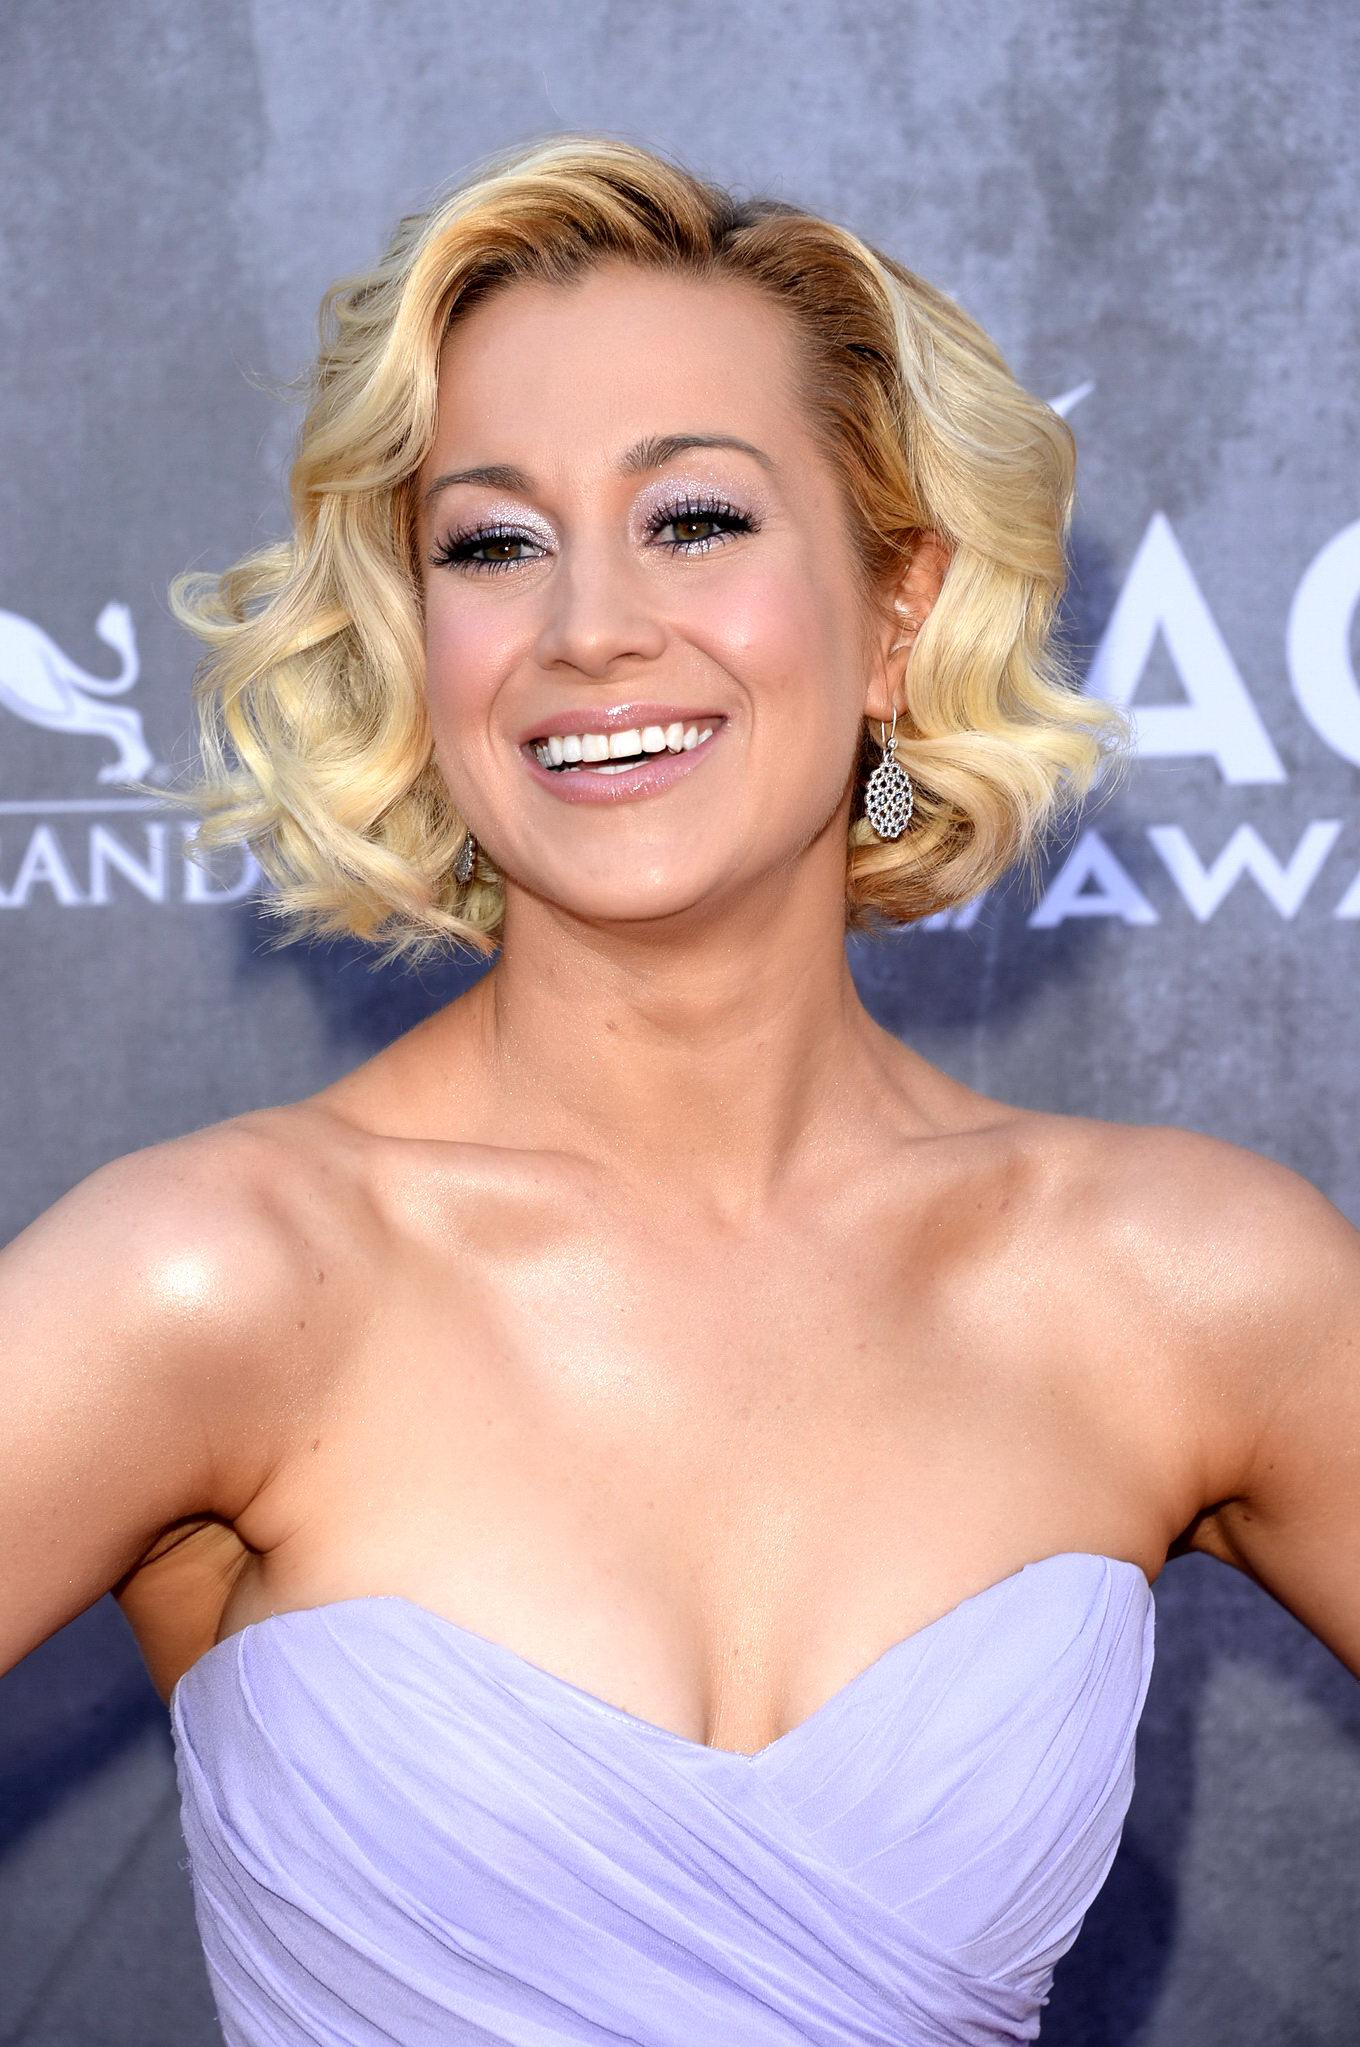 Kellie pickler nude at the beach impossible